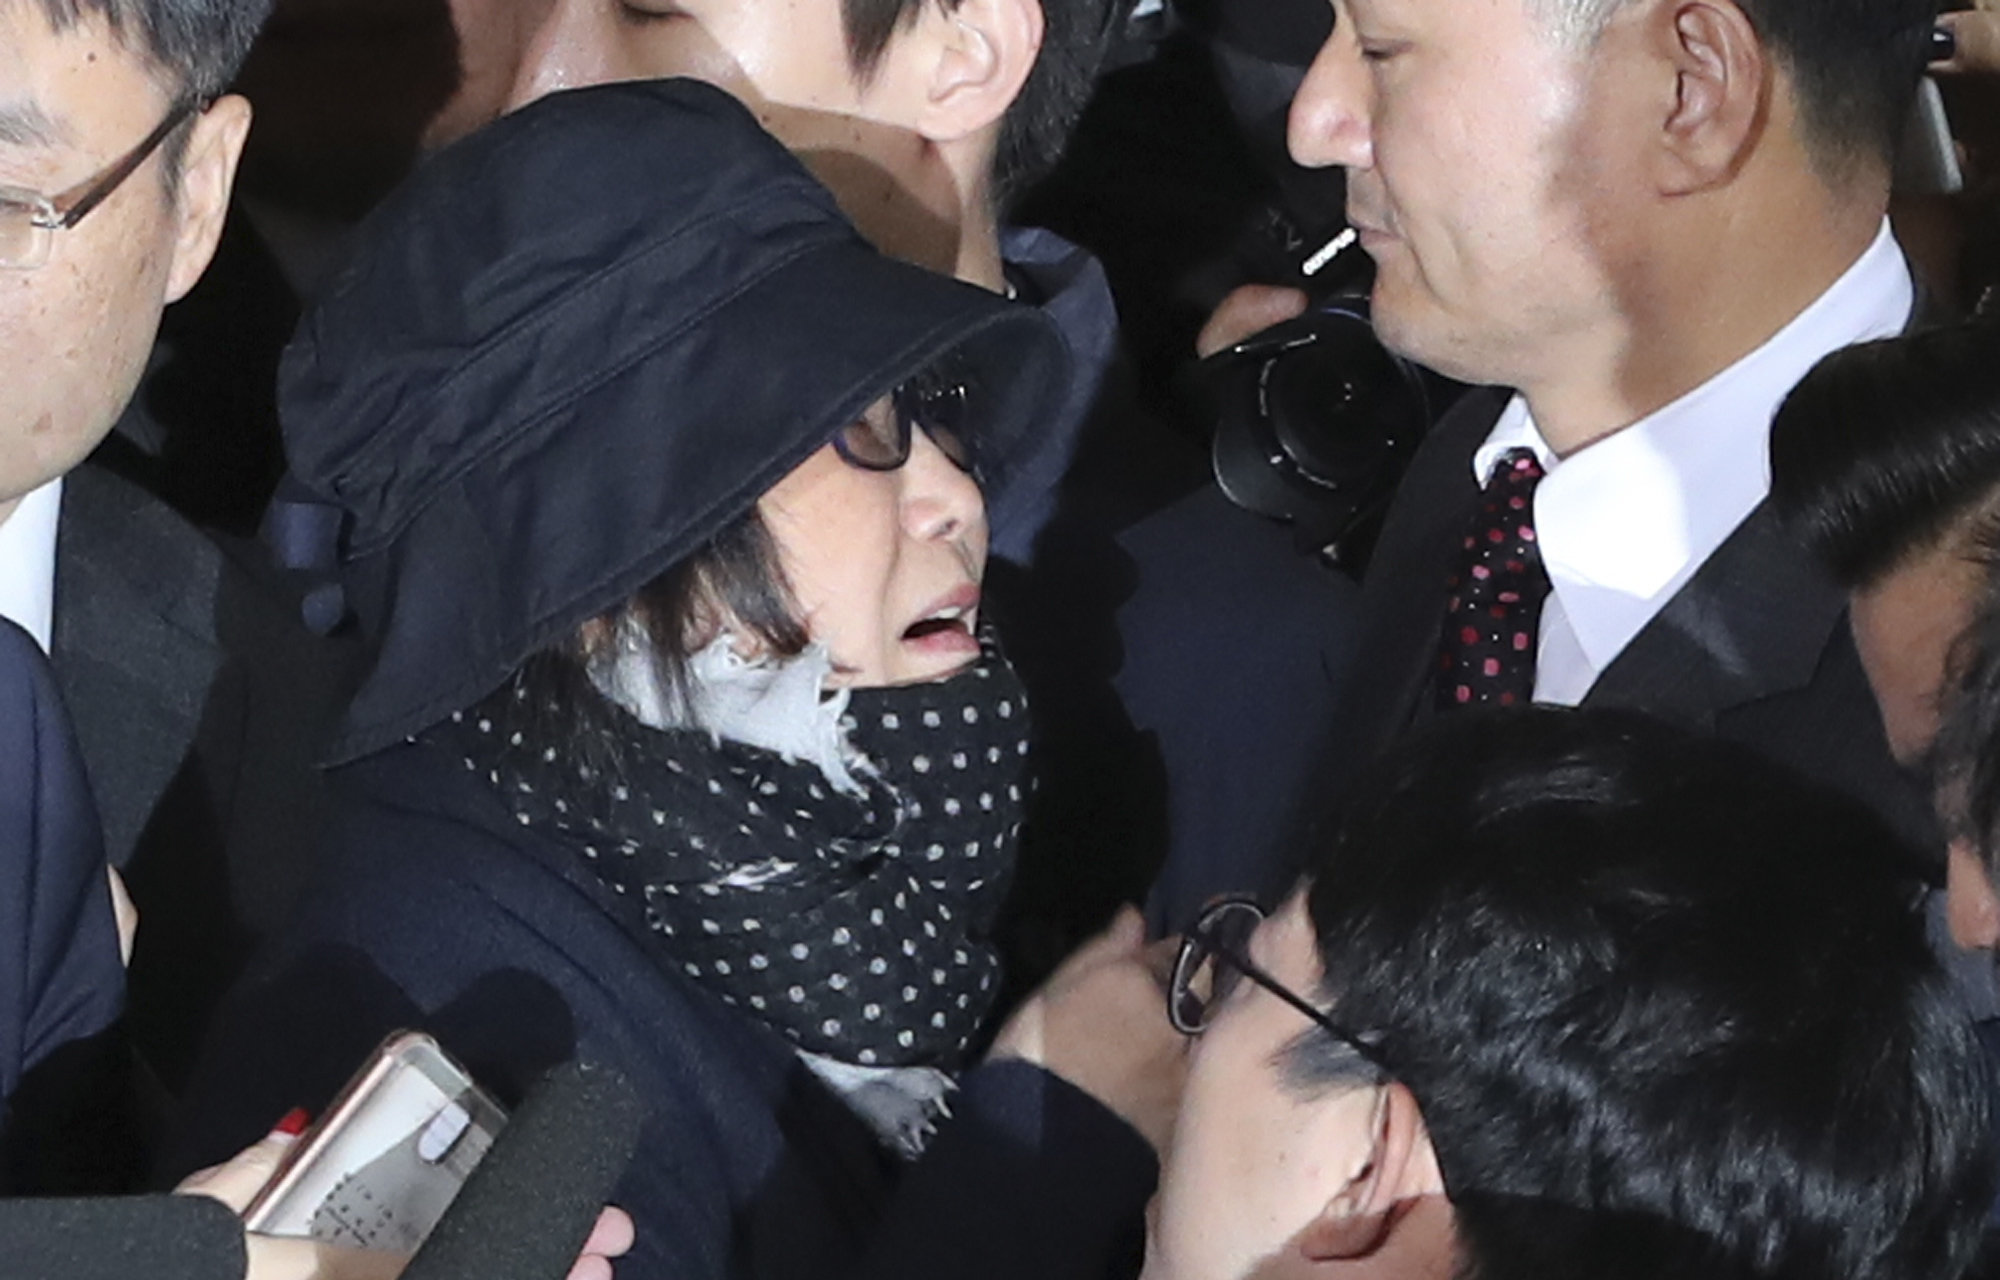 Choi Soon-sil, a cult leader's daughter with a decades-long connection to President Park Geun-hye, is surrounded by prosecutor's officers and media upon her arrival at the Seoul Central District Prosecutors' Office, Oct. 31, 2016